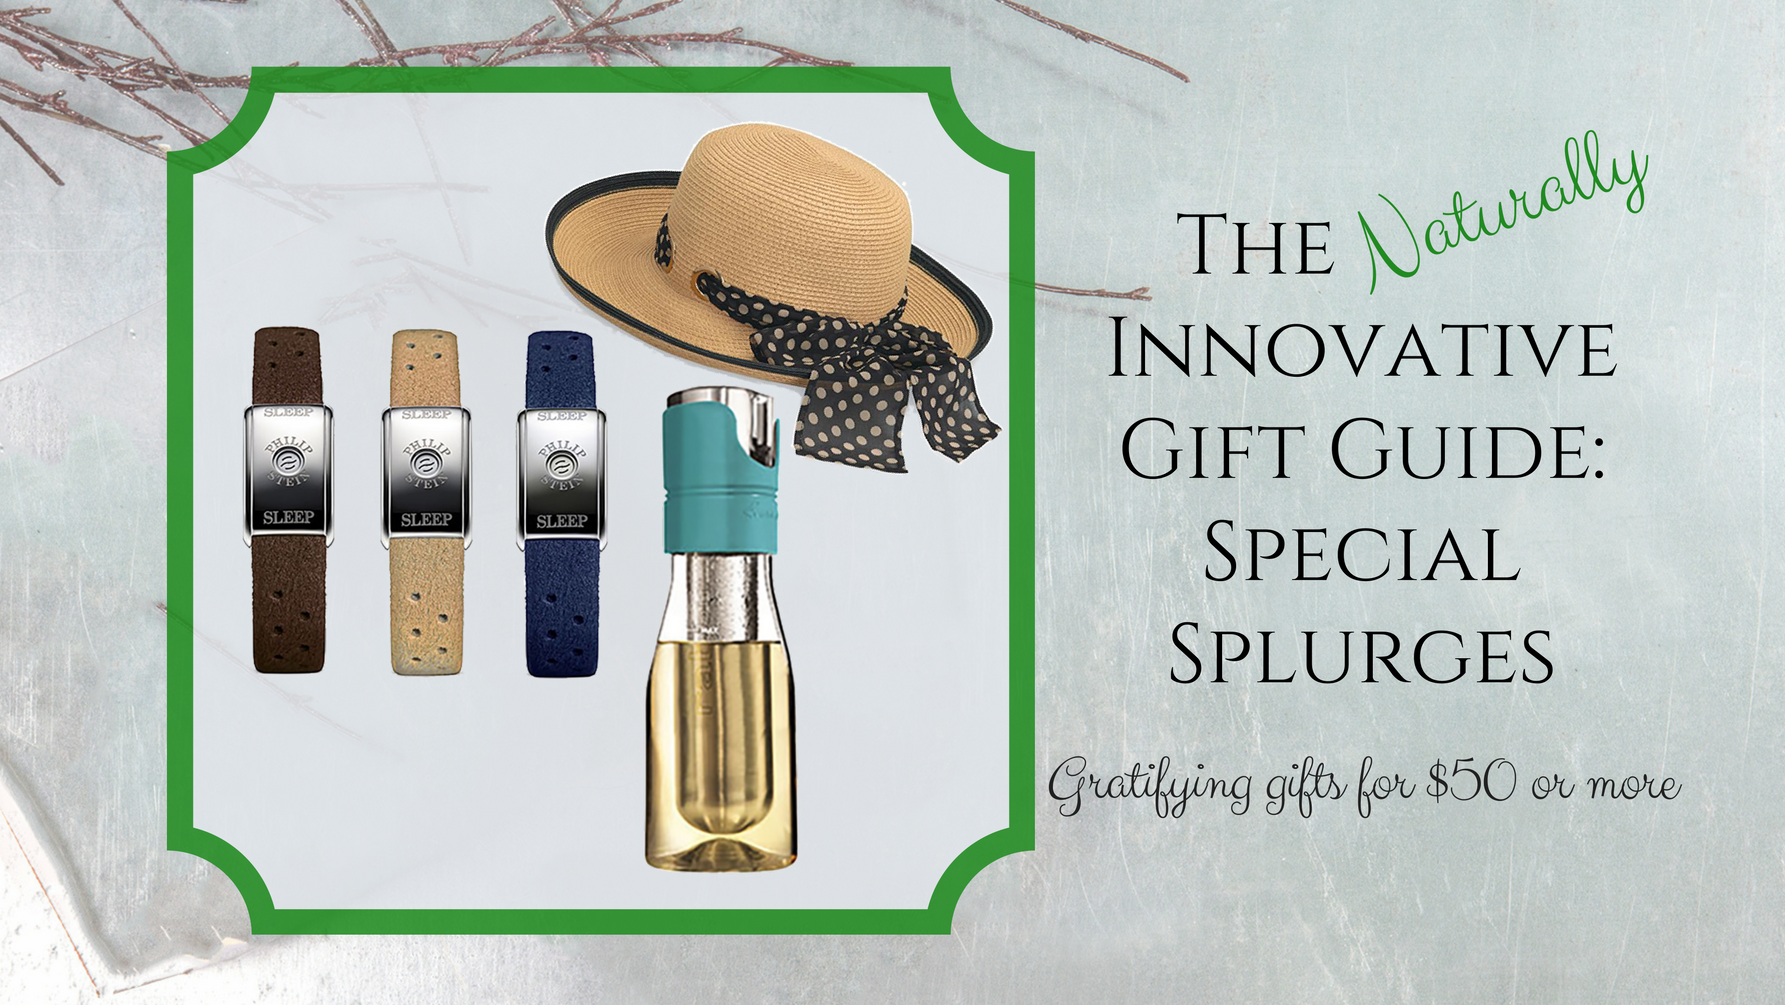 The Naturally Innovative Gift Guide: Special Splurges